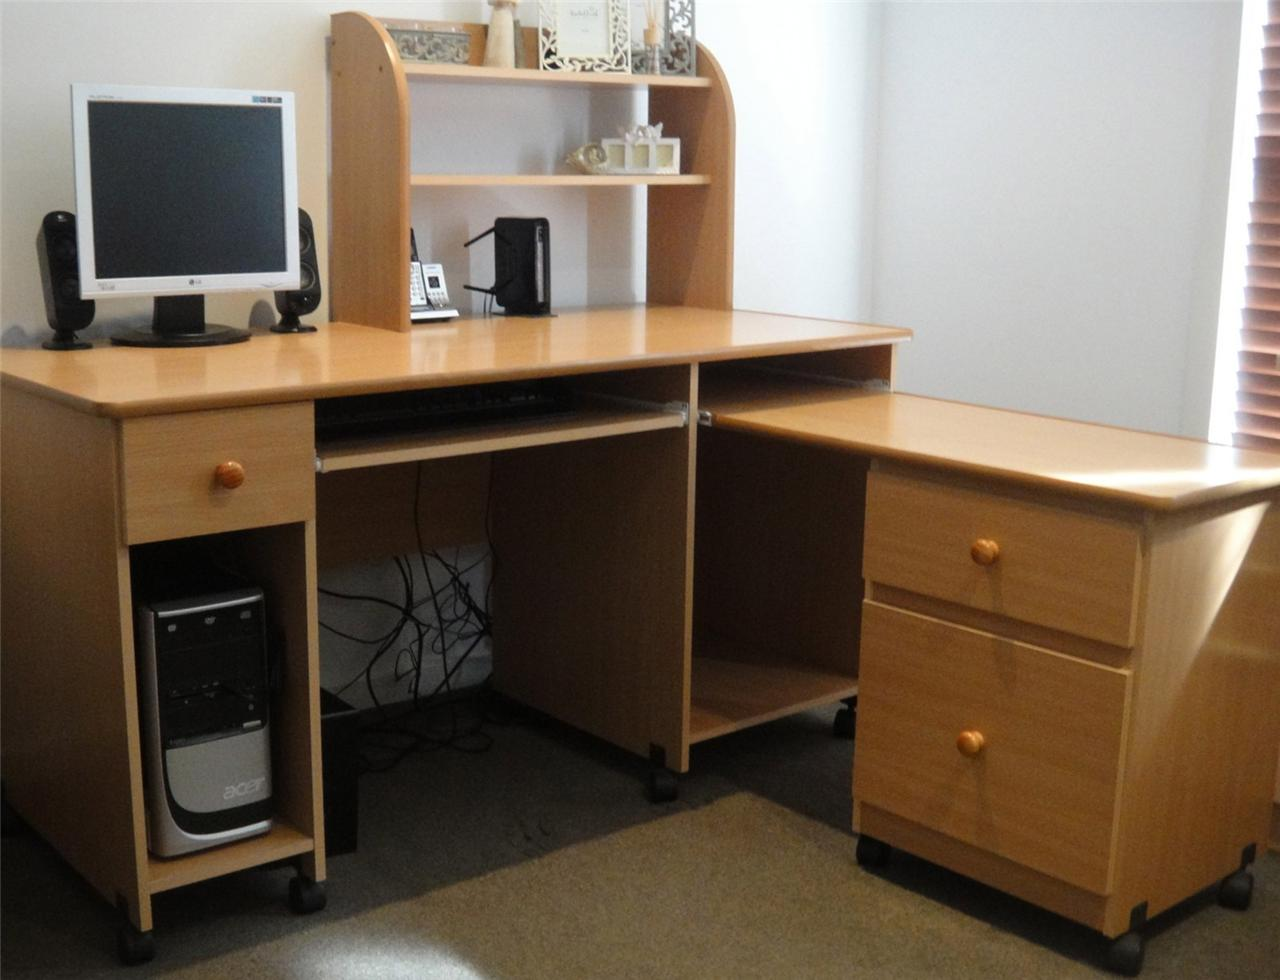 Corner Computer Study Home Office Executive Desk Bookcase Shelves L . Full resolution‎  image, nominally Width 1280 Height 980 pixels, image with #6B4724.